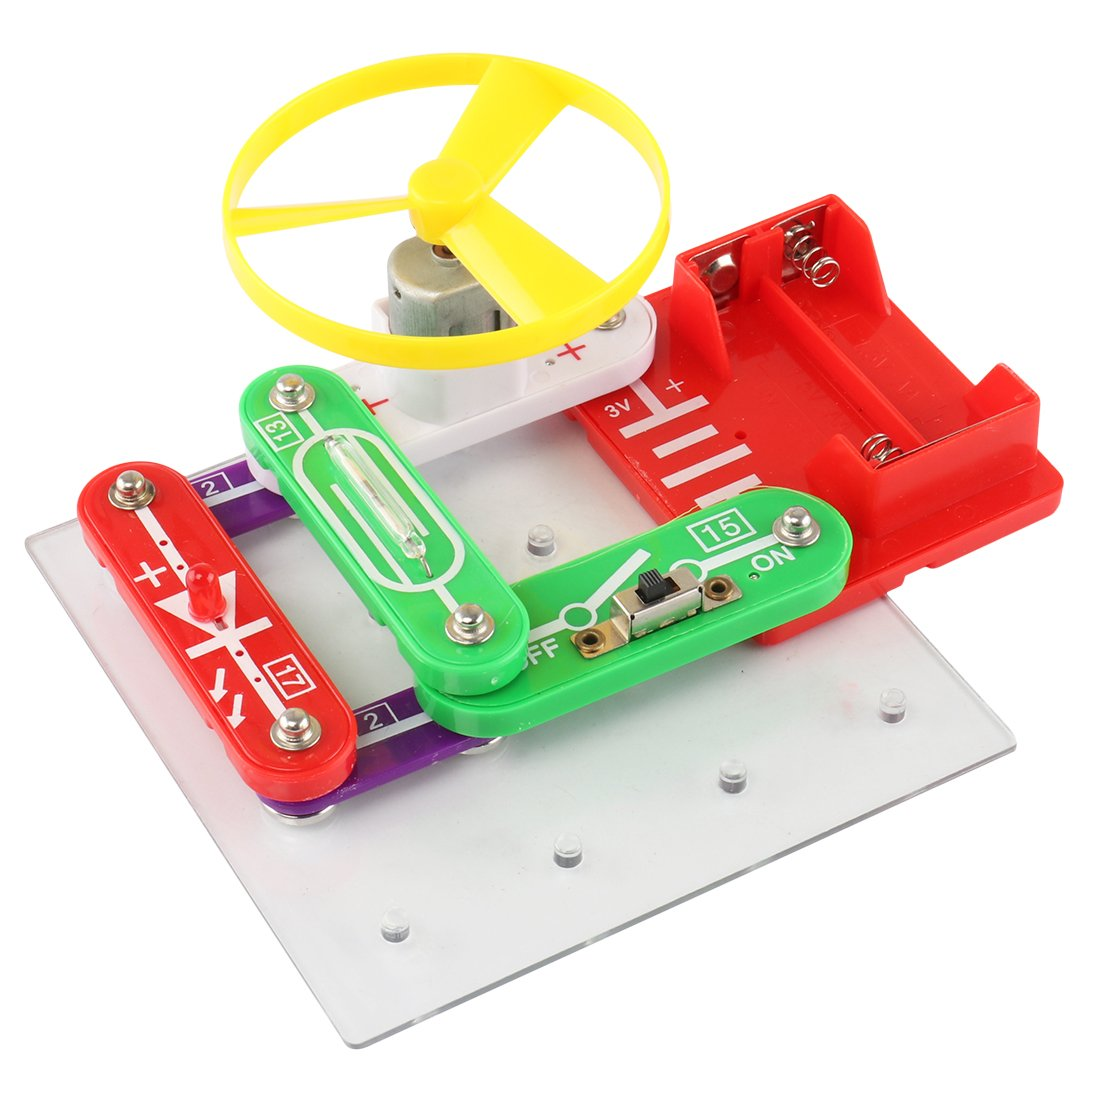 Basic Electronics Discovery Circuit Kit Fcoson Snap Circuits Snaptricity Build 75 Projects Boards Educational Science Toy For Kids 5 And Up Toys Games